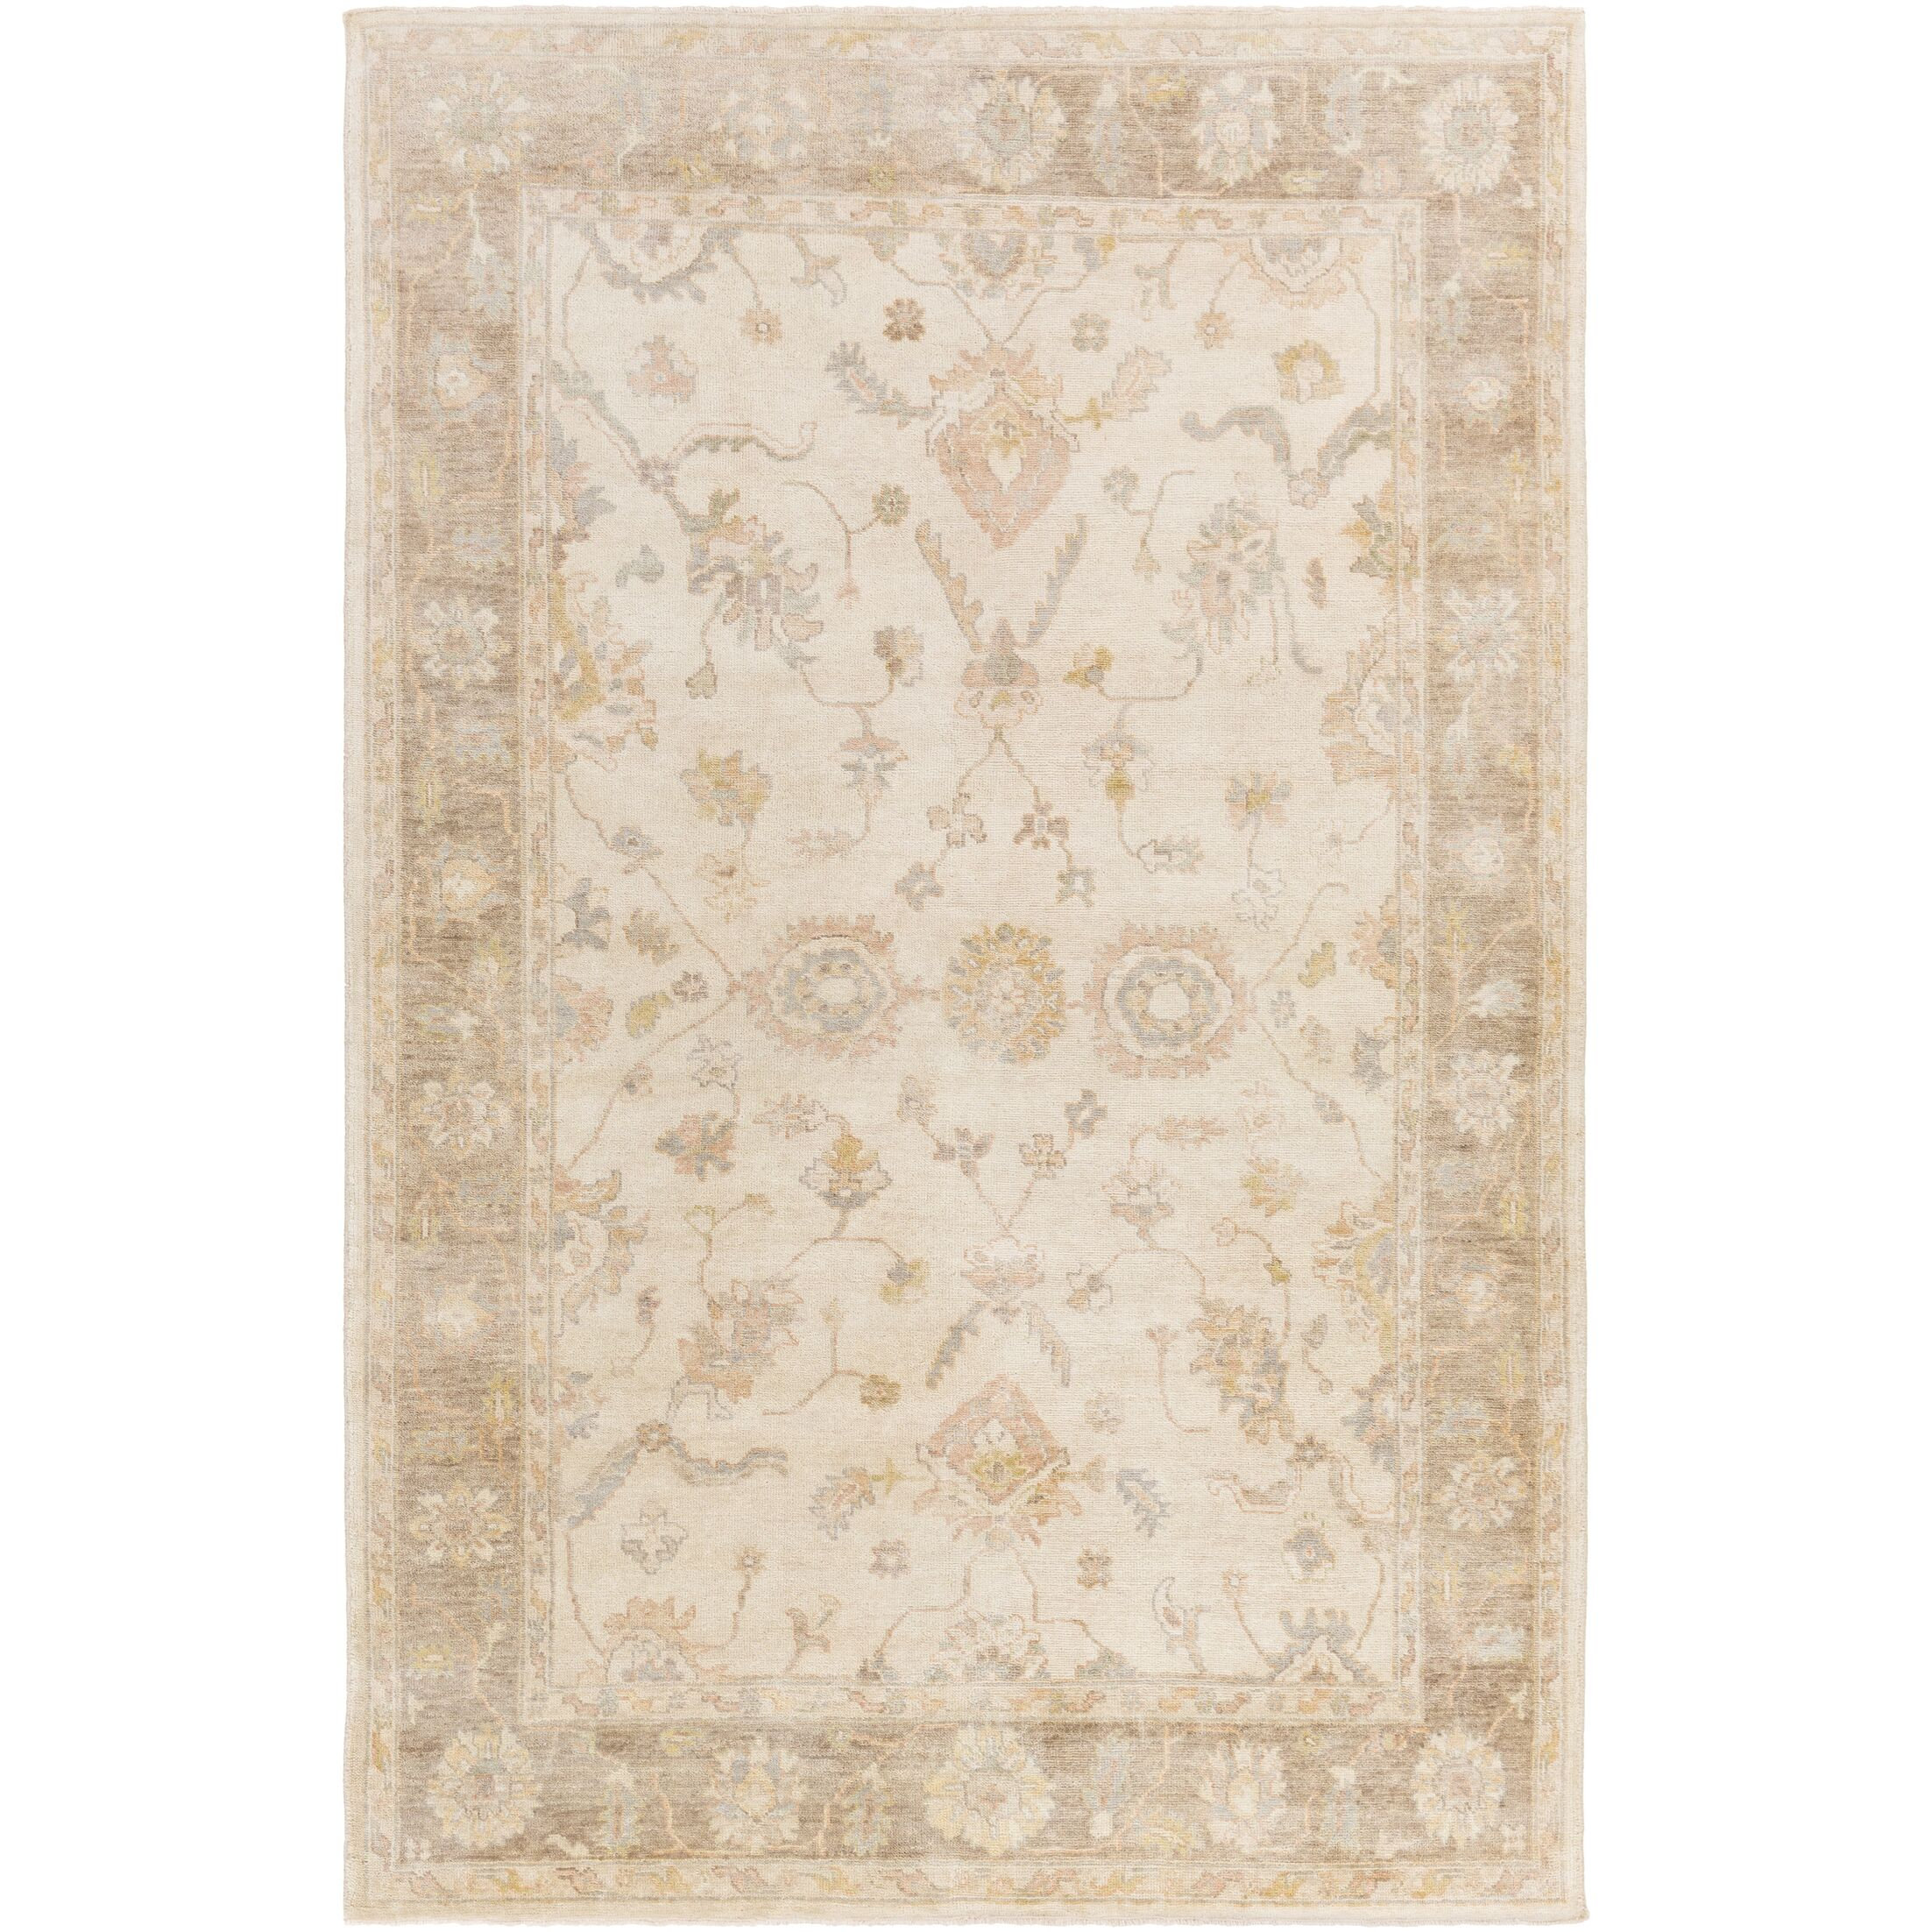 Loire Hand-Knotted Ivory Area Rug Rug Size: Rectangle 4' x 6'